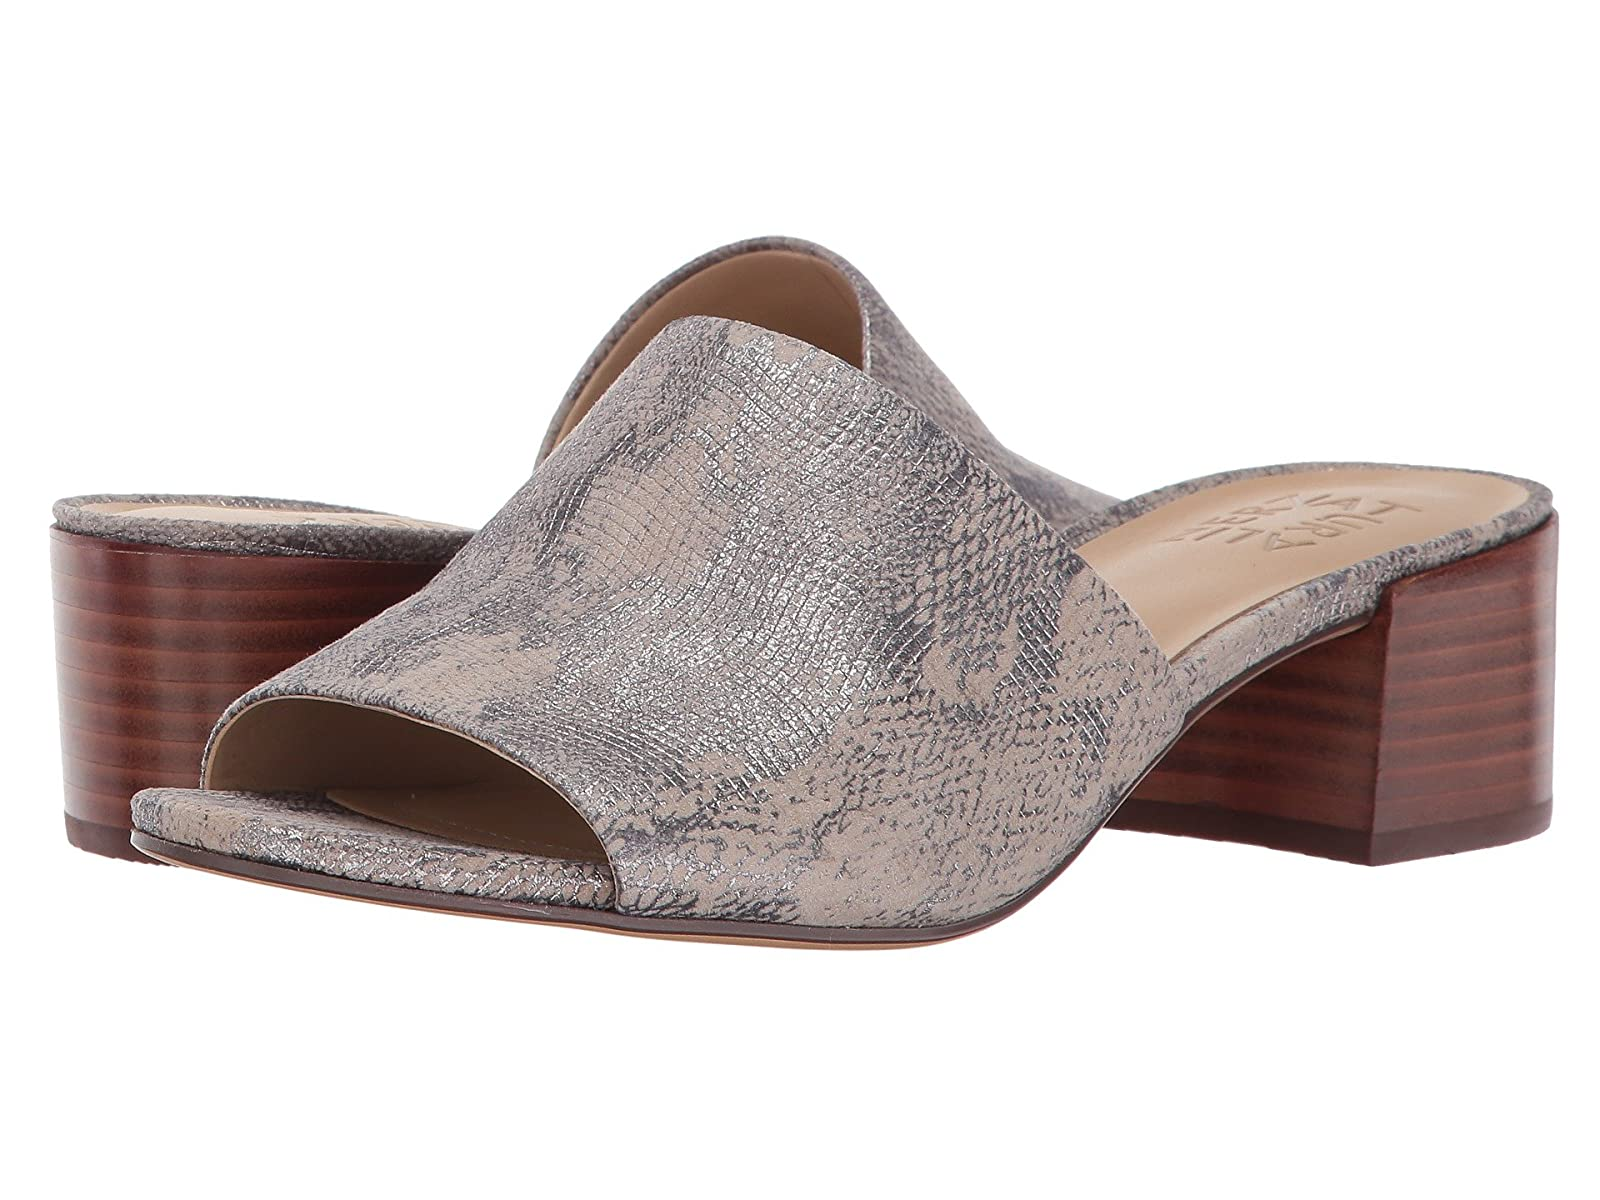 Naturalizer FairleyCheap and distinctive eye-catching shoes